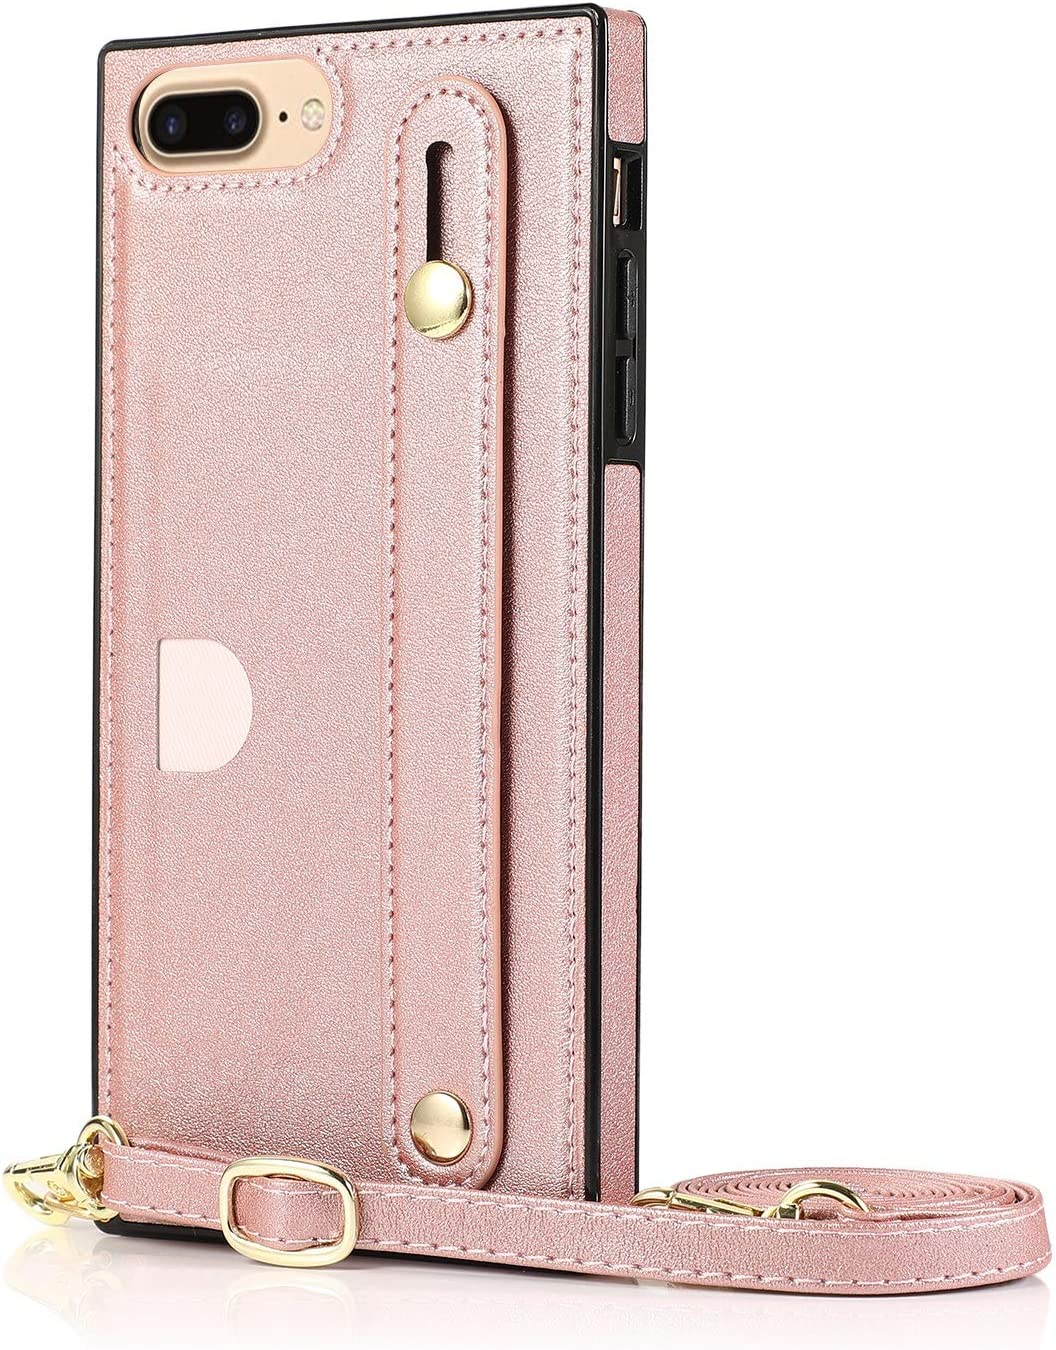 SLDiann Case for iPhone 7/8 Plus, Leather Case with Credit Card Slot Non-Slip Buckle Holder/Crossbody Long Lanyard, Shockproof Leather TPU Case Cover for iPhone 7/8 Plus (Color : Rosegold)